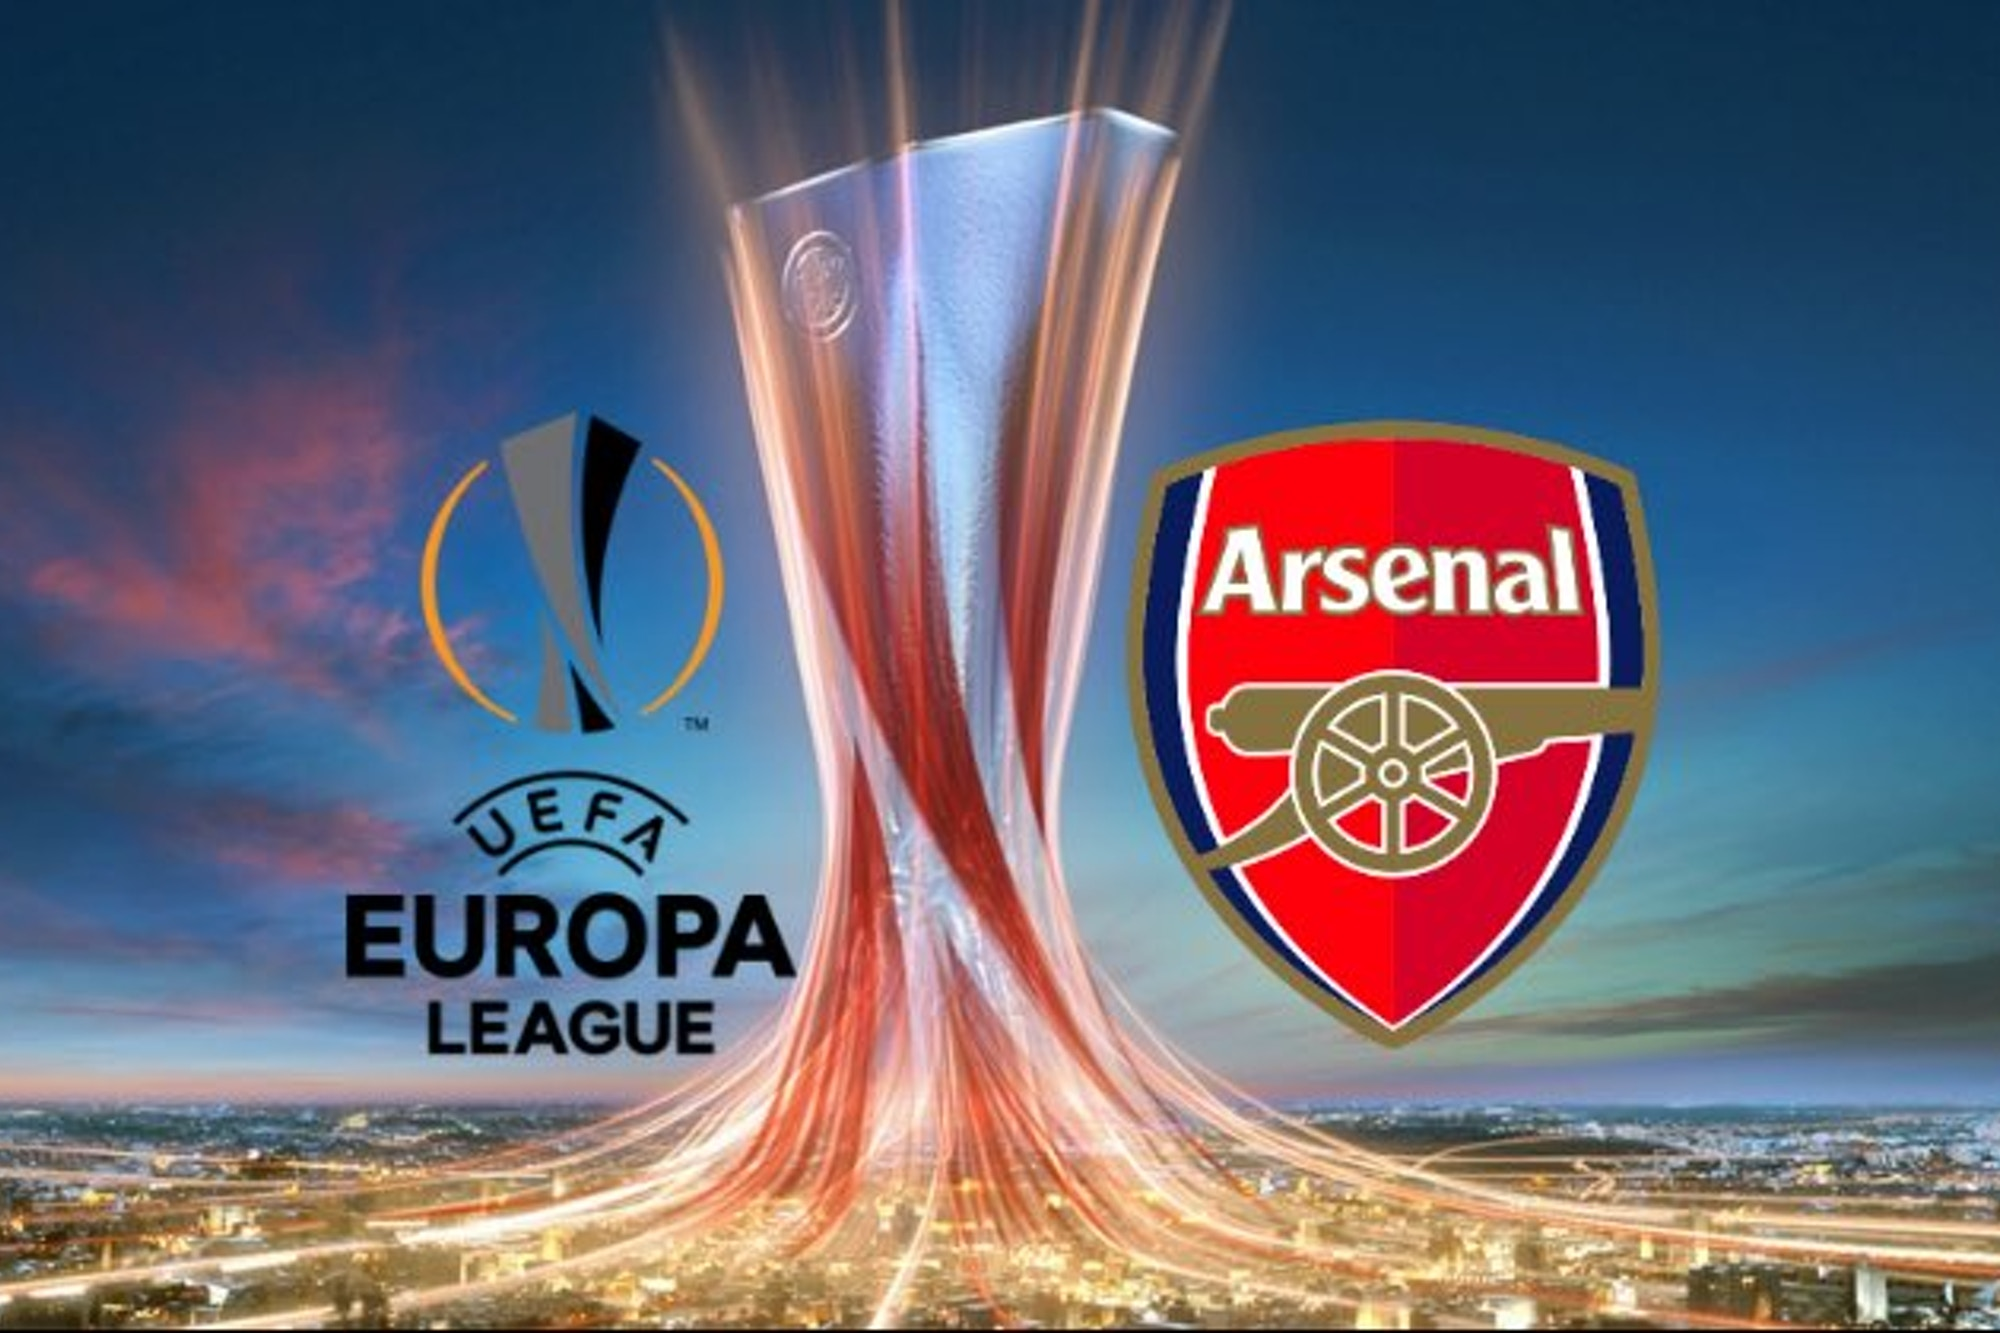 Announcement expected of neutral venue for Arsenal's game at Benfica